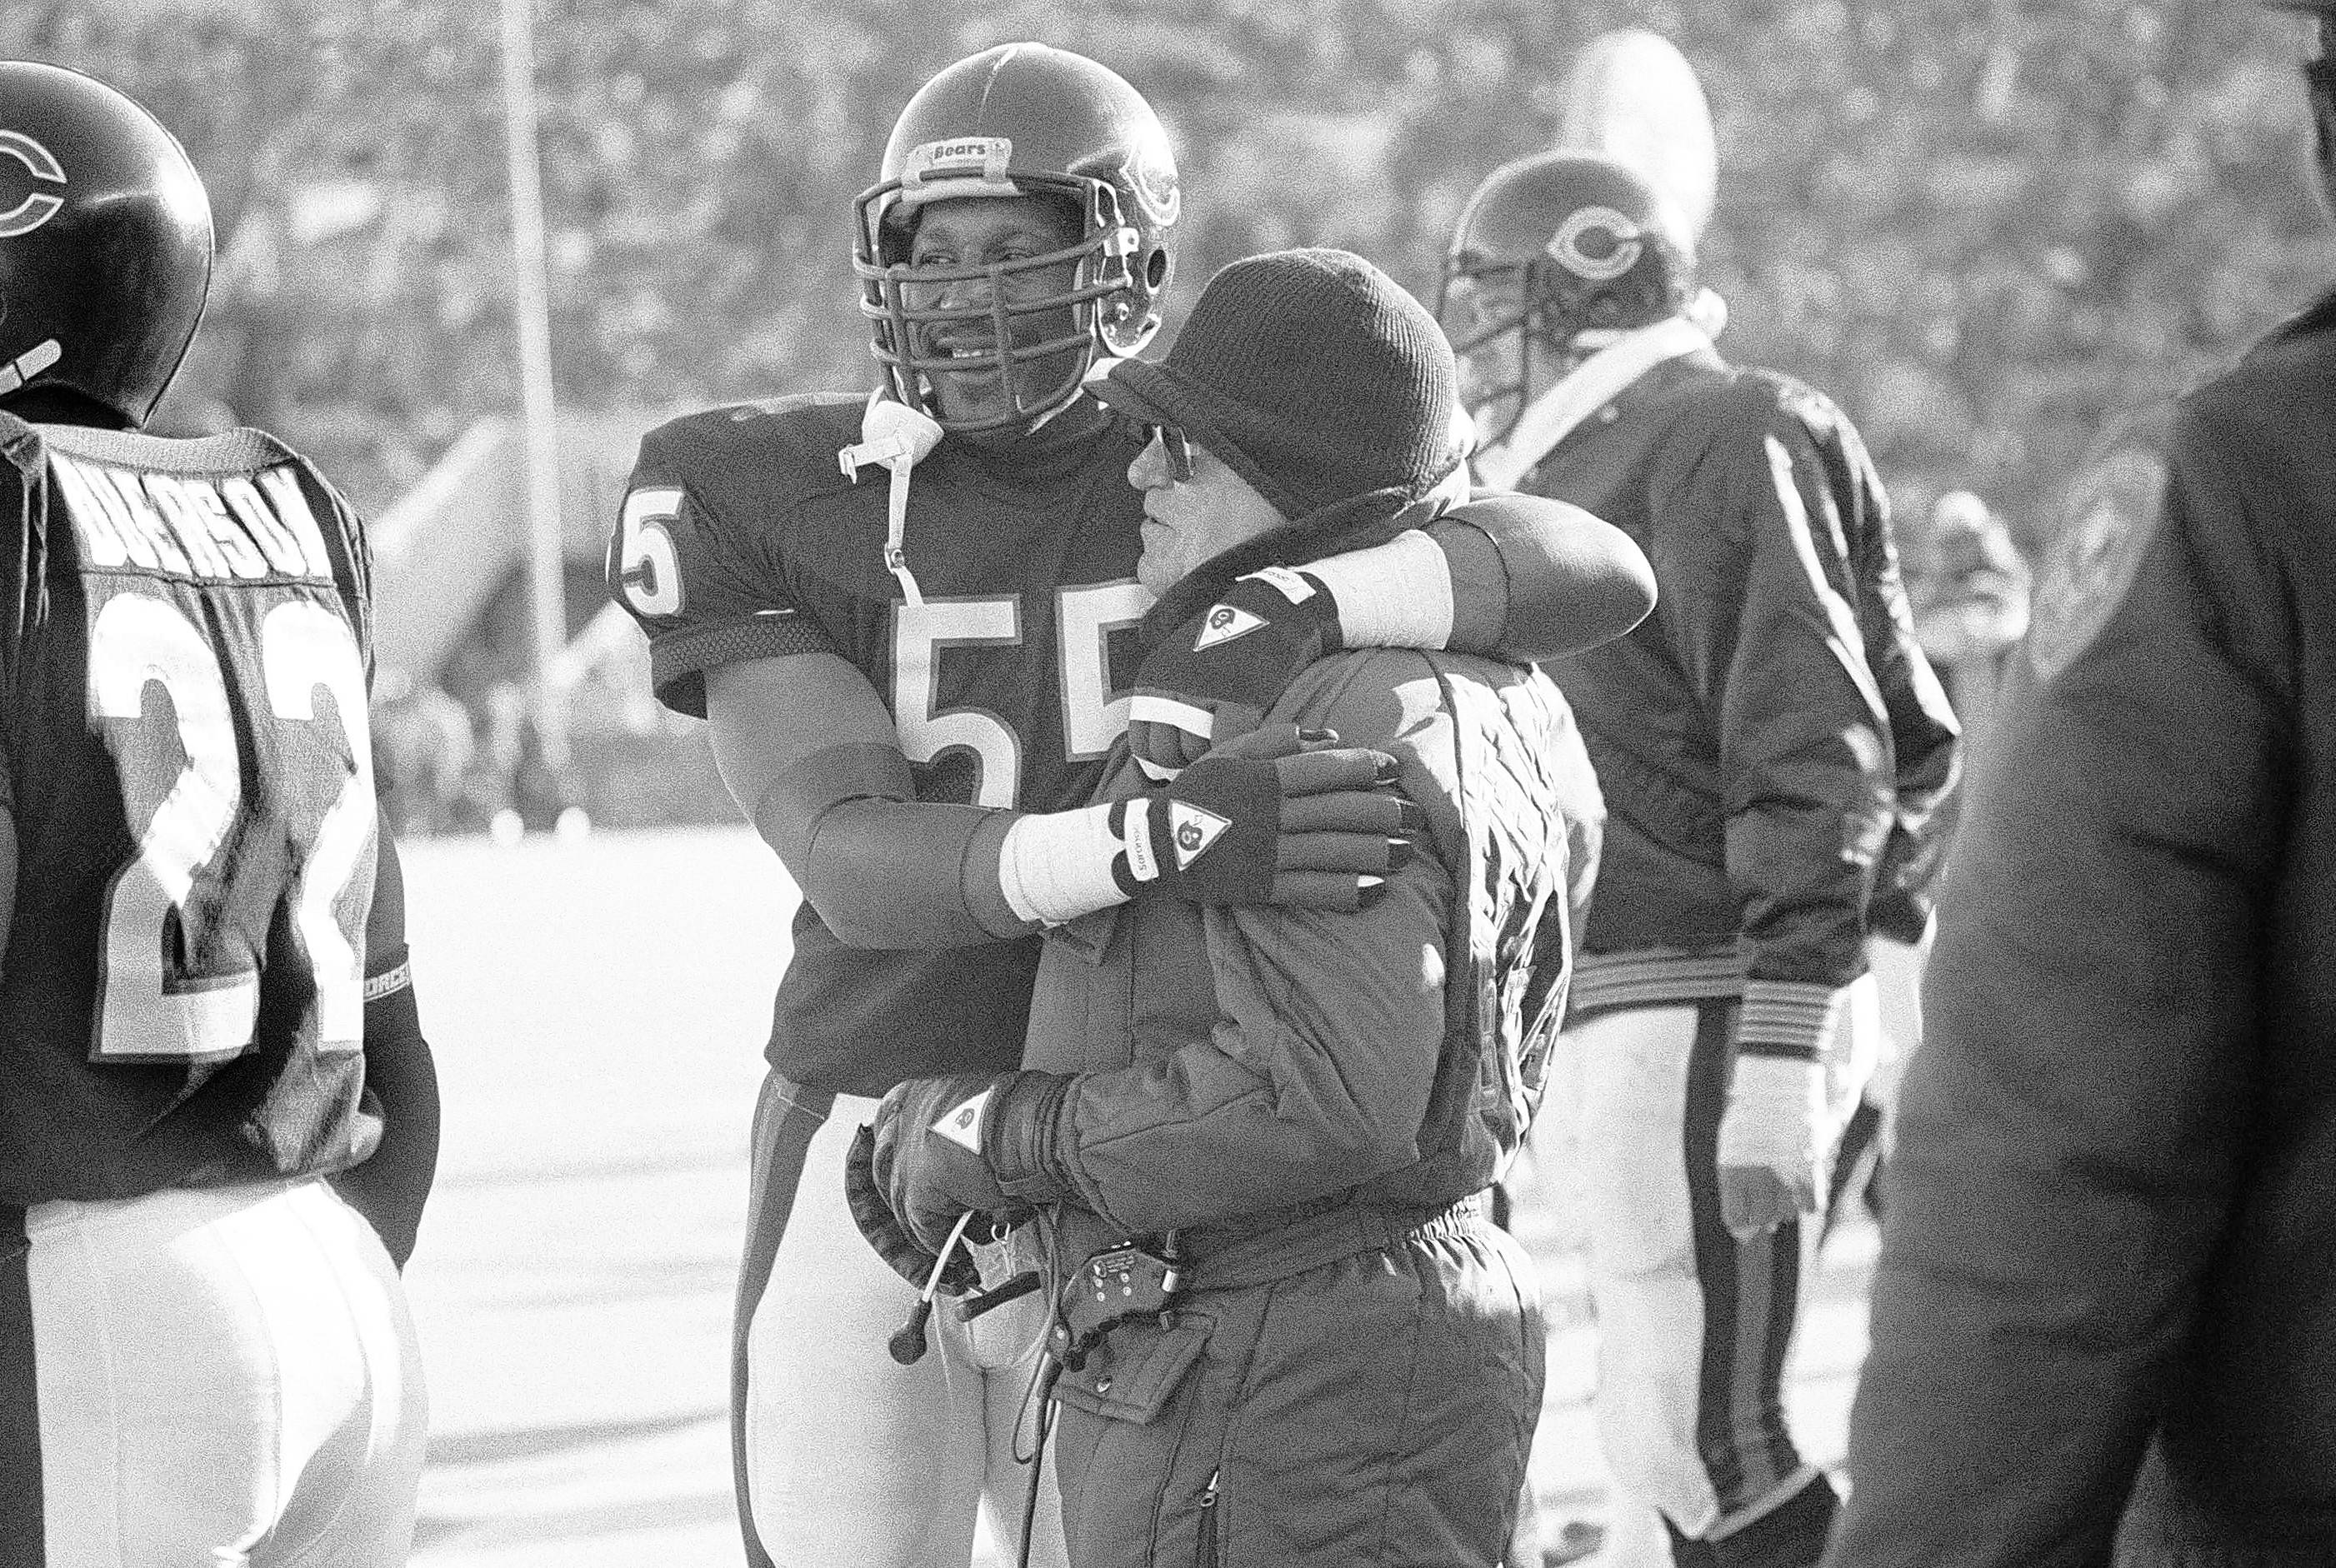 Defensive coach Buddy Ryan of the Chicago Bears hugs linebacker Otis Wilson (55) as they watch the final seconds run off the clock in the Bears game against the New York Giants, on Jan. 5, 1986 at Soldier Field in Chicago. The Bears defense held the Giants 181 yards in the game which sends the Bears against the Los Angeles Rams.(AP Photo/John Swart)